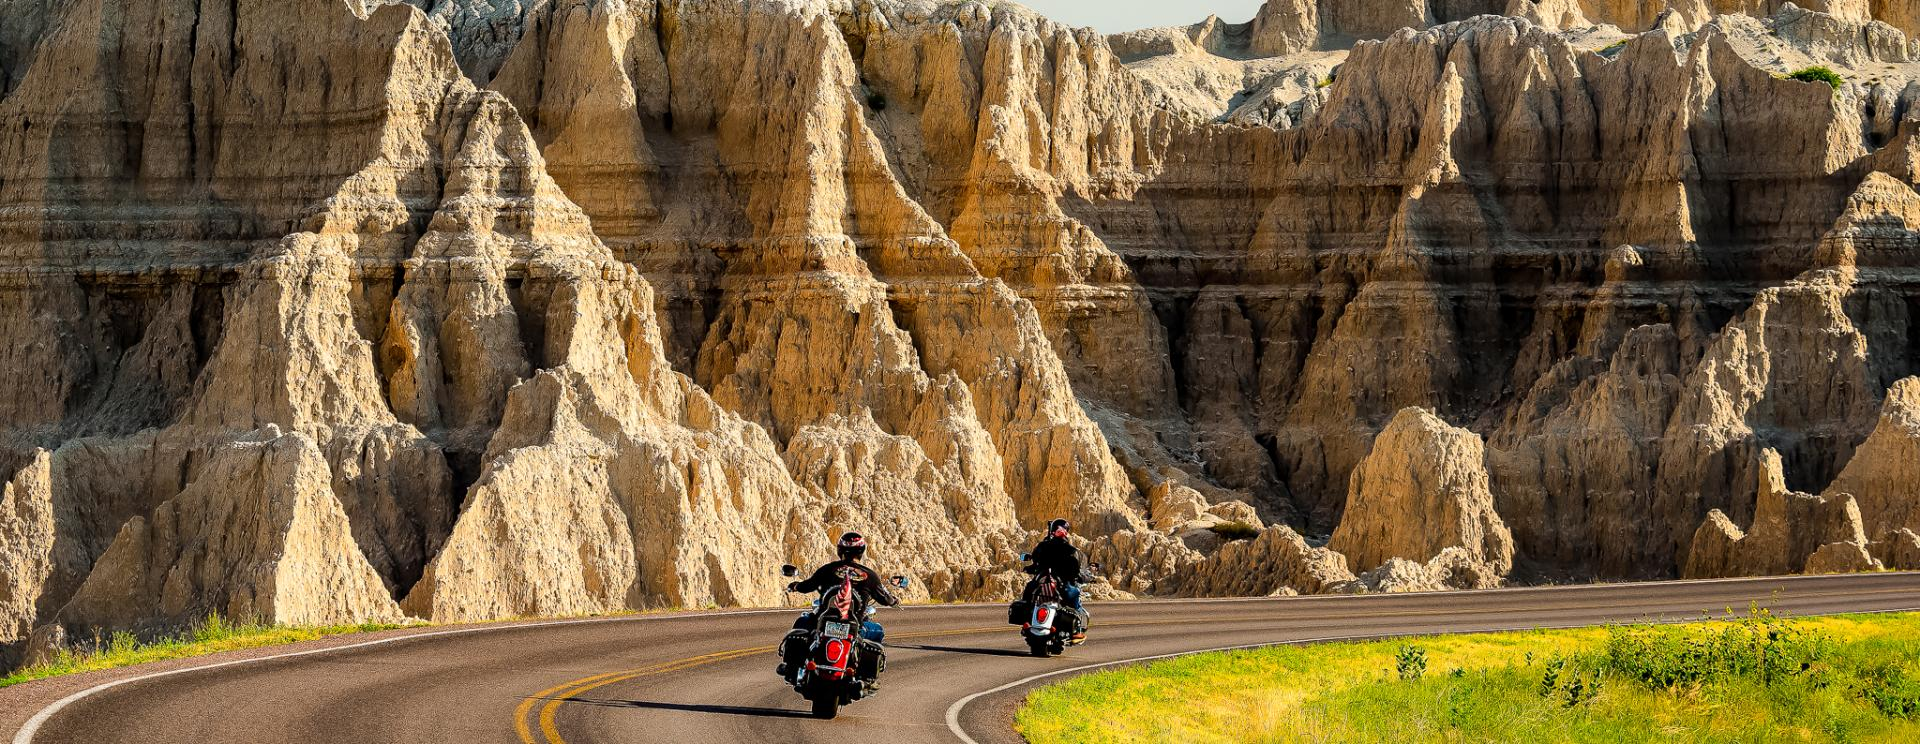 Closing out the Sturgis Motorcycle Rally and Riding into Fall